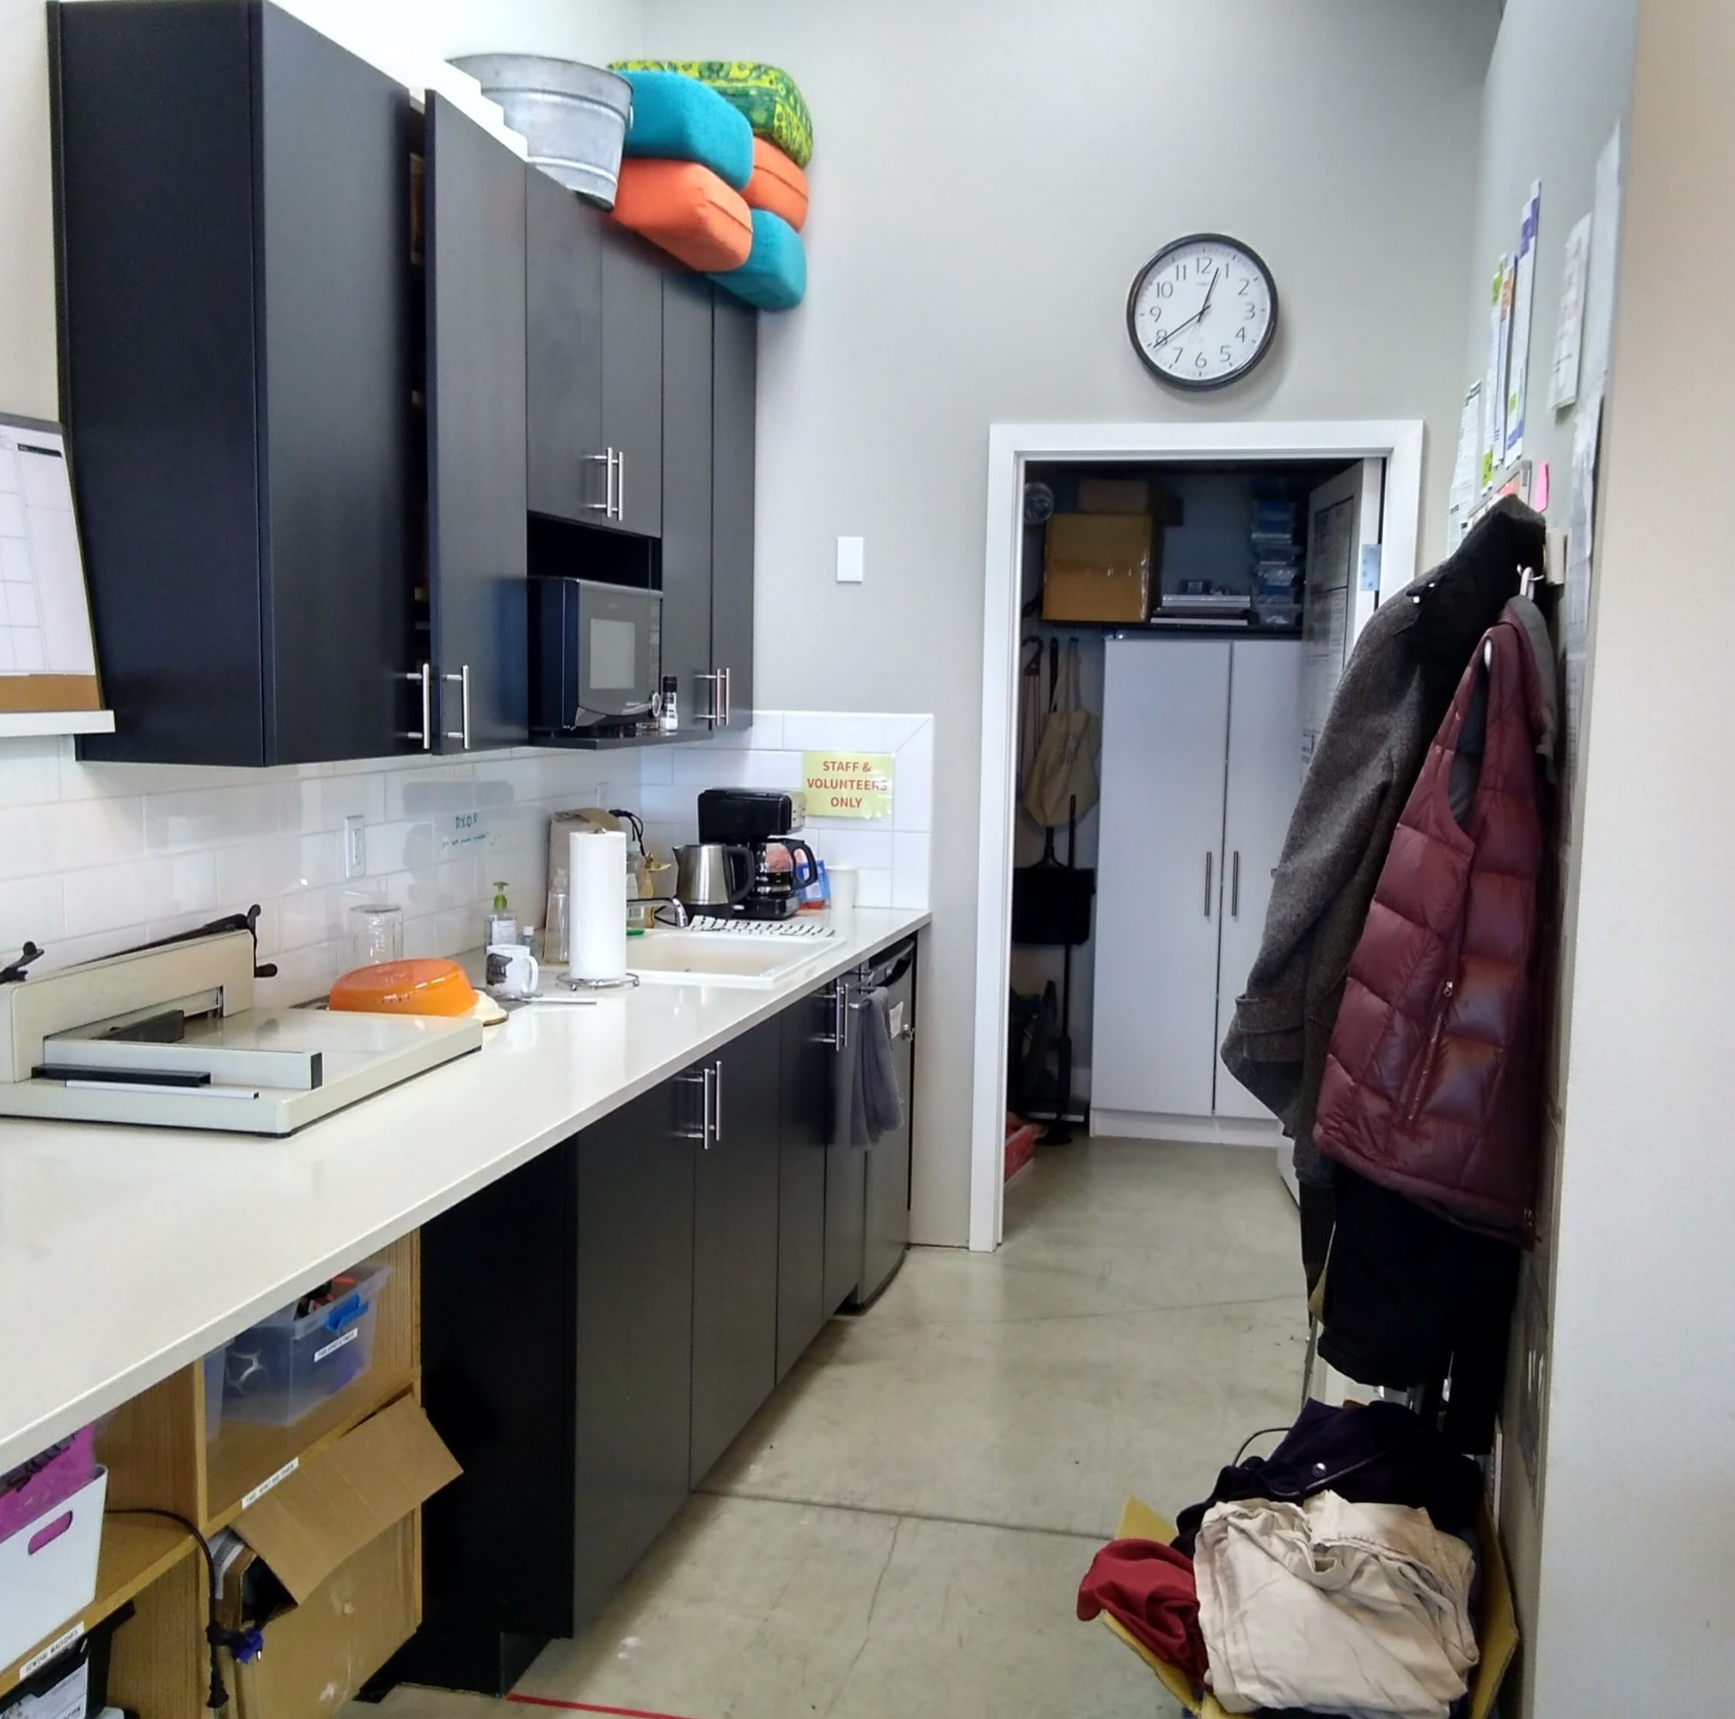 Kitchen - The kitchen area houses a sink, coffee pot, kettle and dishes for staff/volunteer use. Snacks for visitors are stored in the upper cupboards and you will find cleaning supplies below the sink. The wall across from the cupboards holds a bulletin board with volunteer information, time sheets, and pegs to hang your coat/bag.The storage room at the end holds larger items (e.g. Mindstorm Robotics kits) and additional supplies.